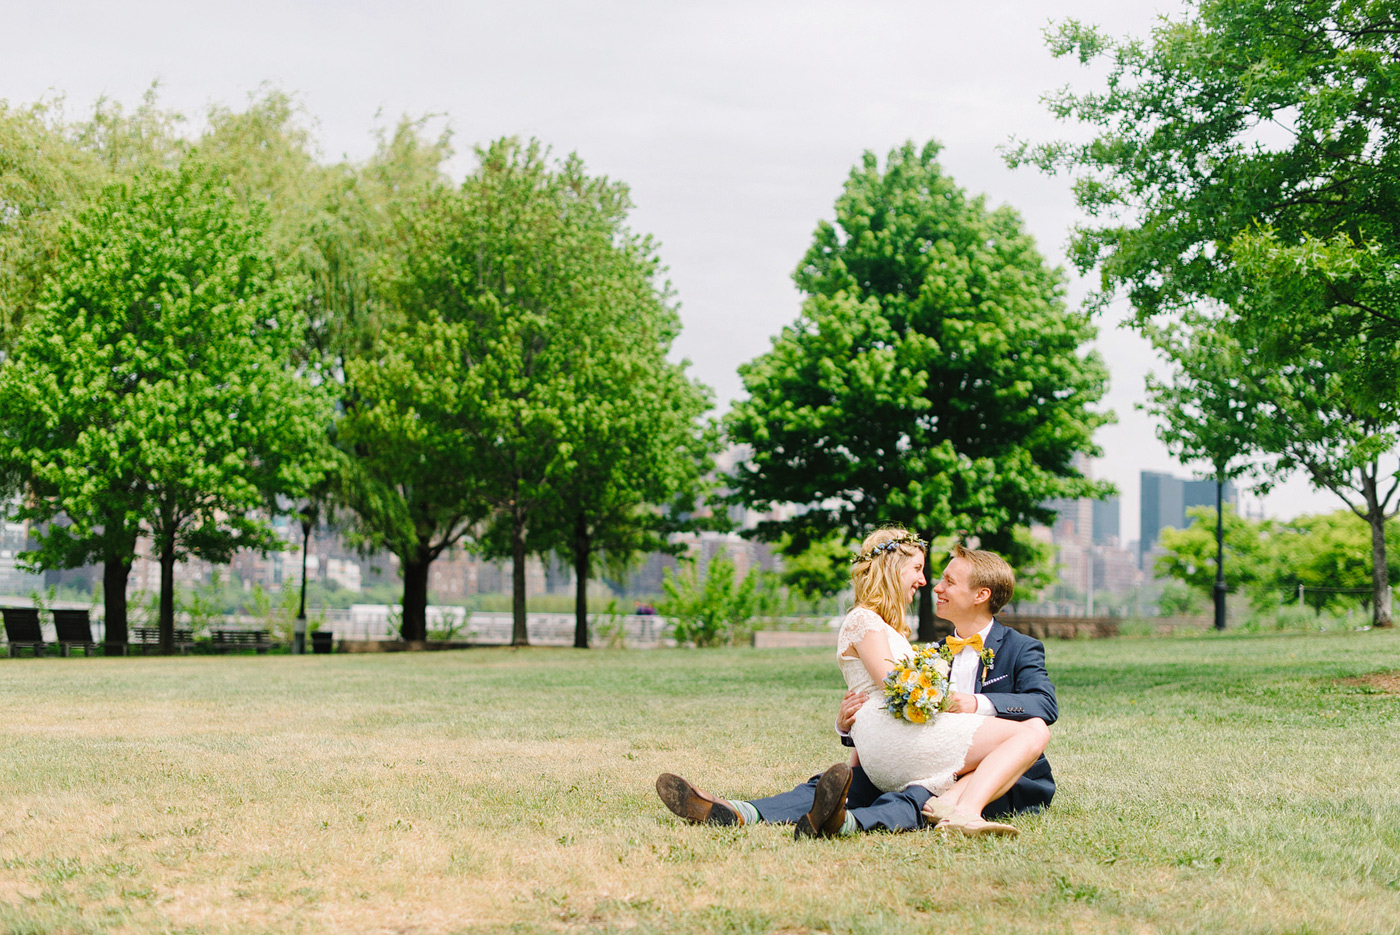 couple cuddling in new york park on wedding day